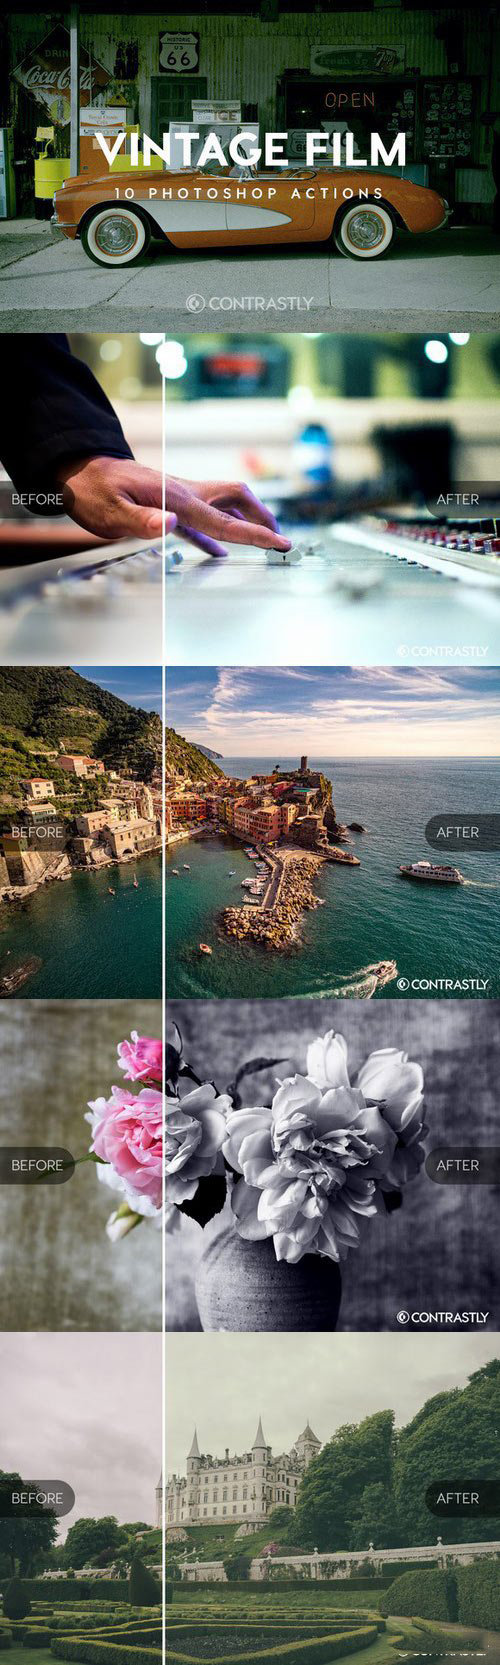 Creativemarket - Vintage Film Photoshop Actions